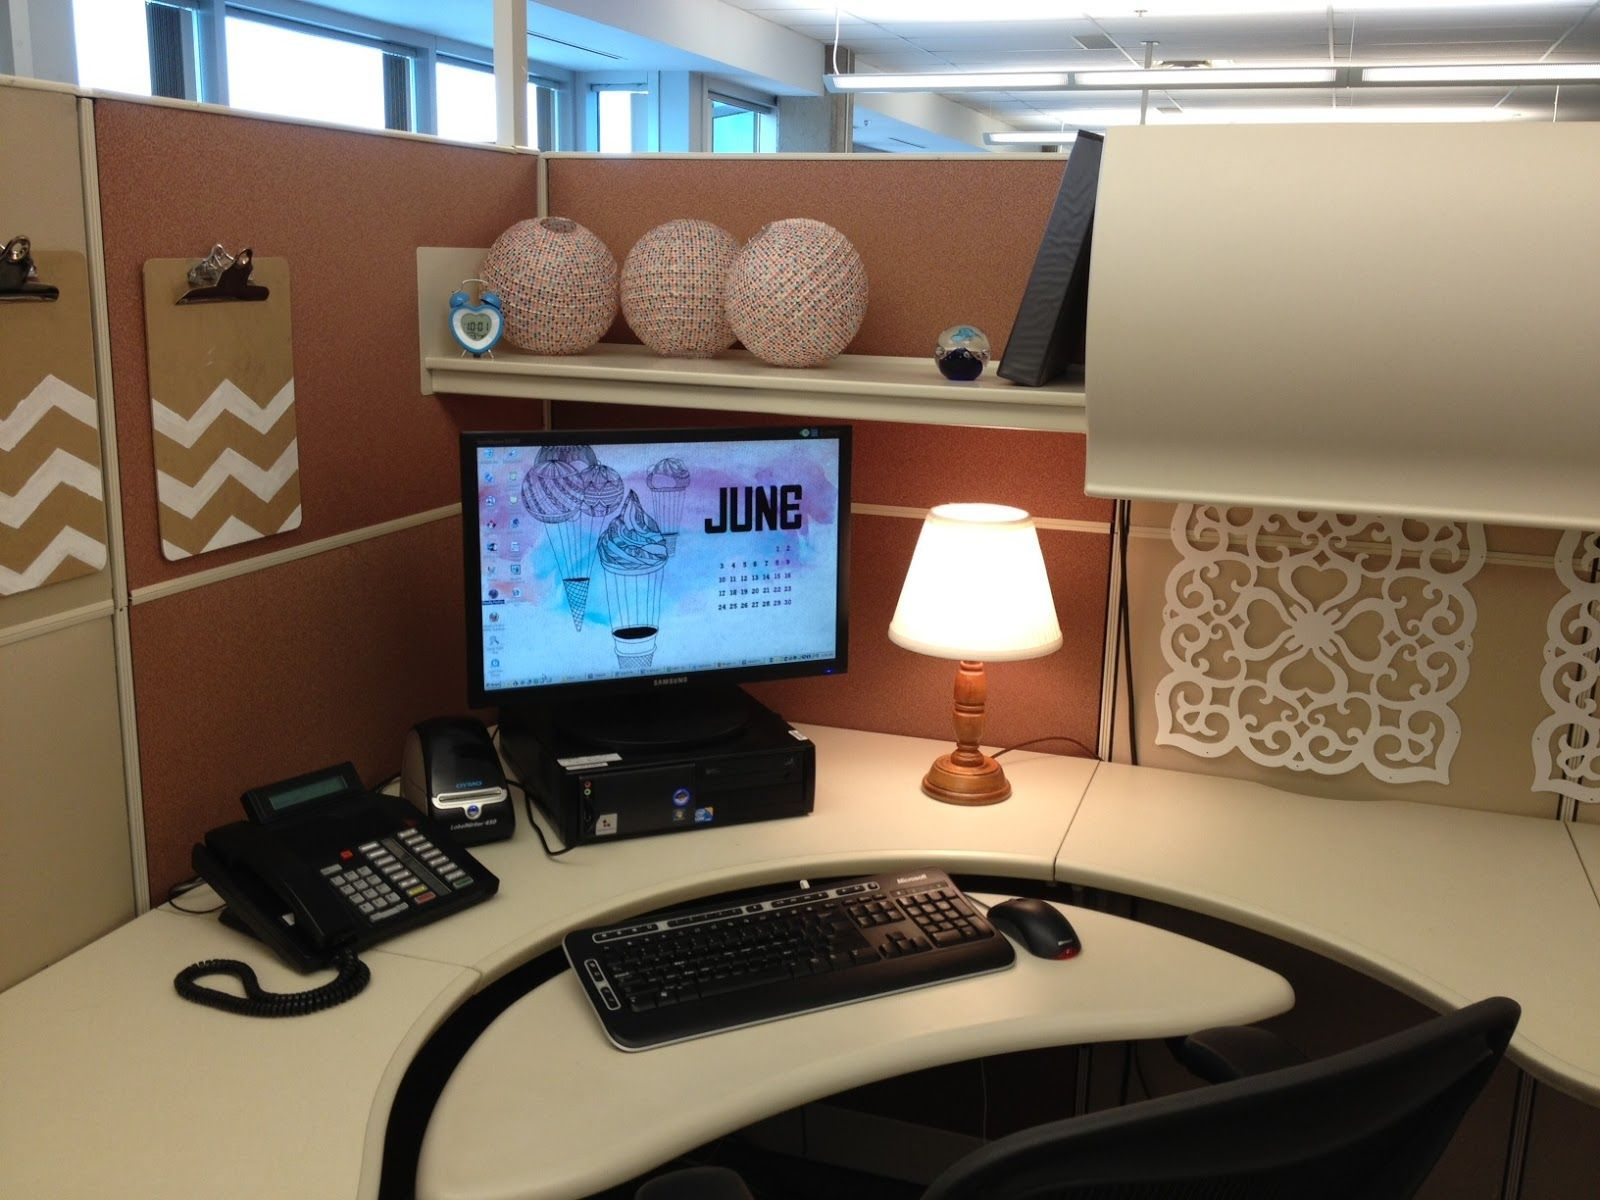 Cubicle Decoration Ideas 20 cubicle decor ideas to make your office style work as hard as